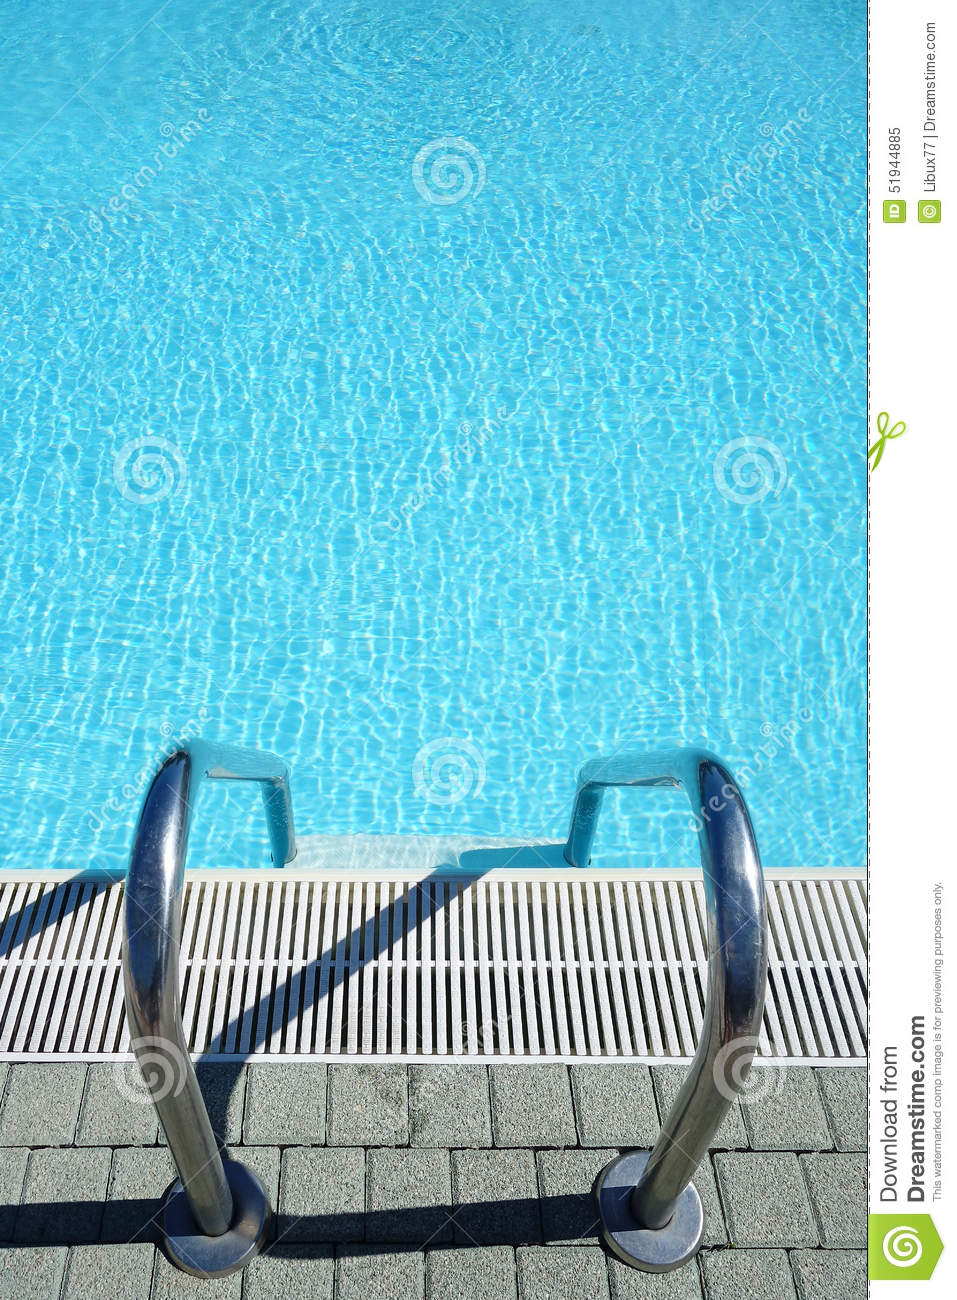 Top view swimming pool water ladder stock image image - Waterford crystal swimming pool times ...